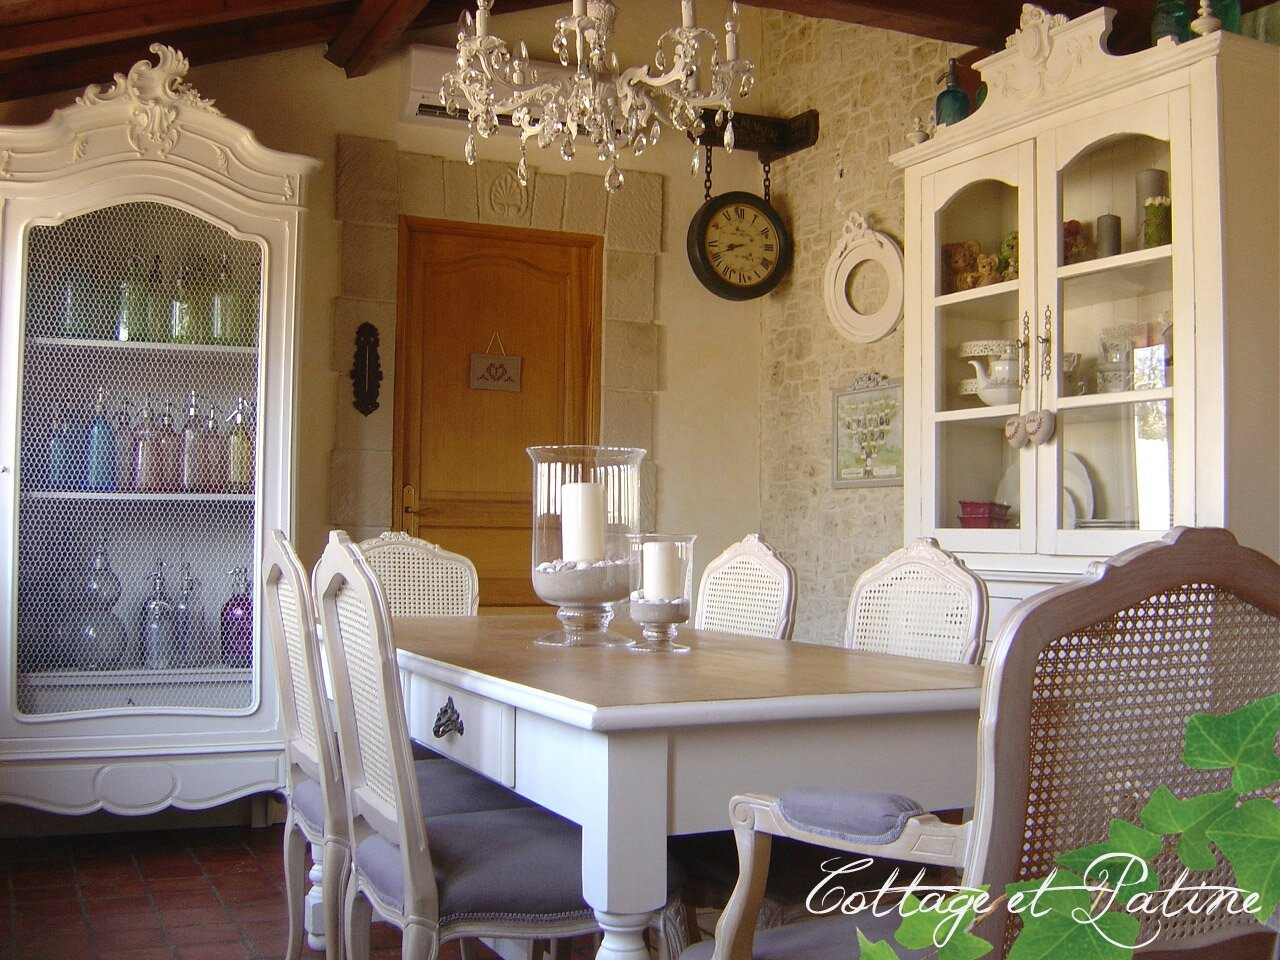 Table de salle manger cottage et patine le blog - Le bon coin 71 ameublement ...